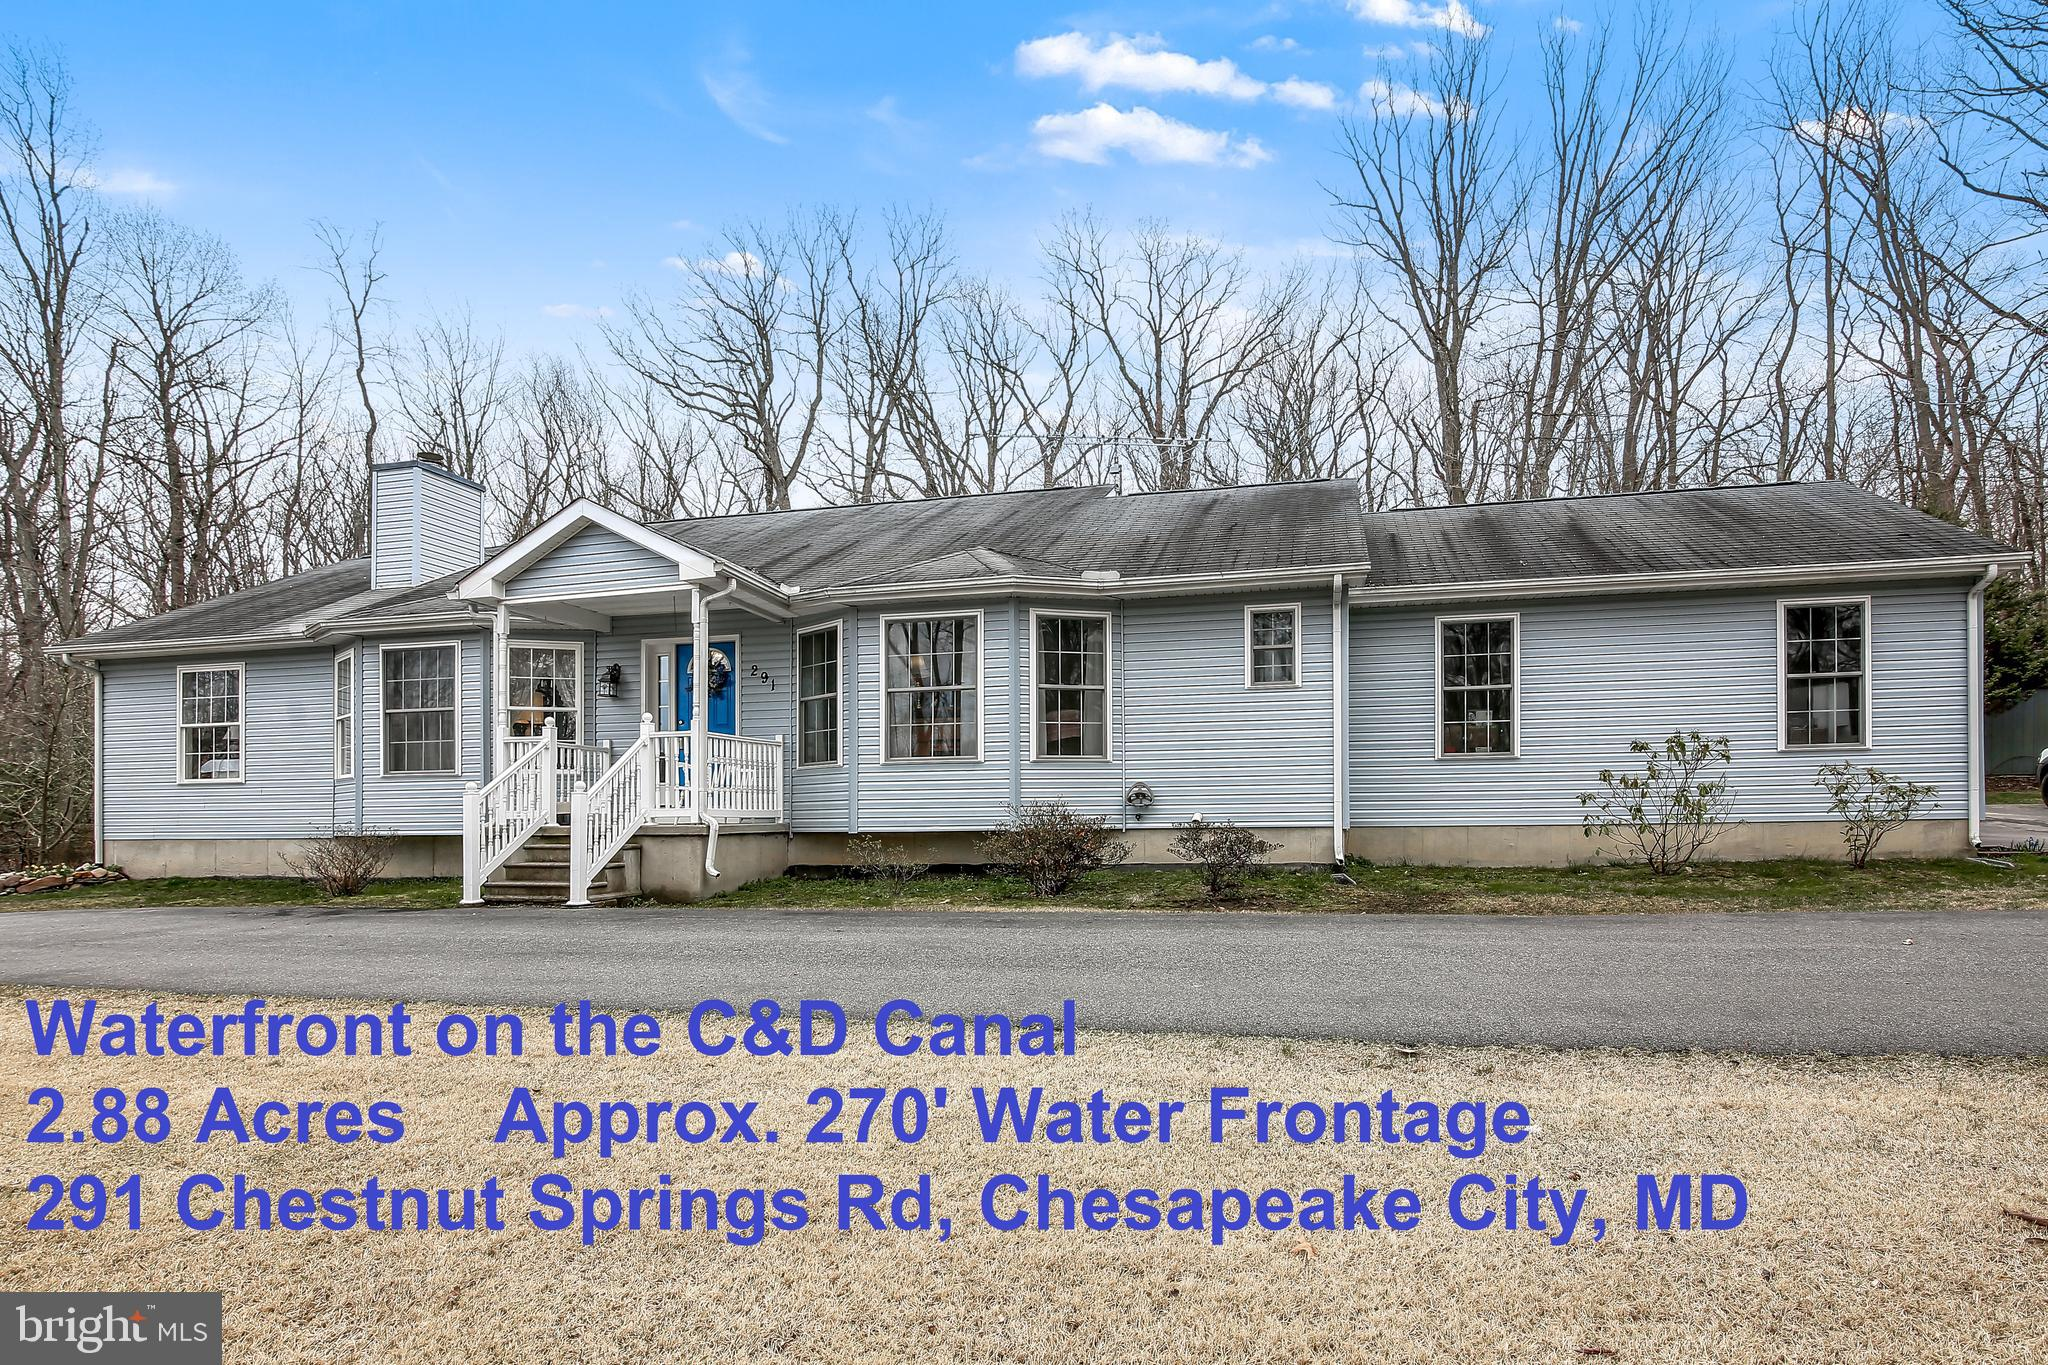 291 CHESTNUT SPRINGS ROAD, CHESAPEAKE CITY, MD 21915